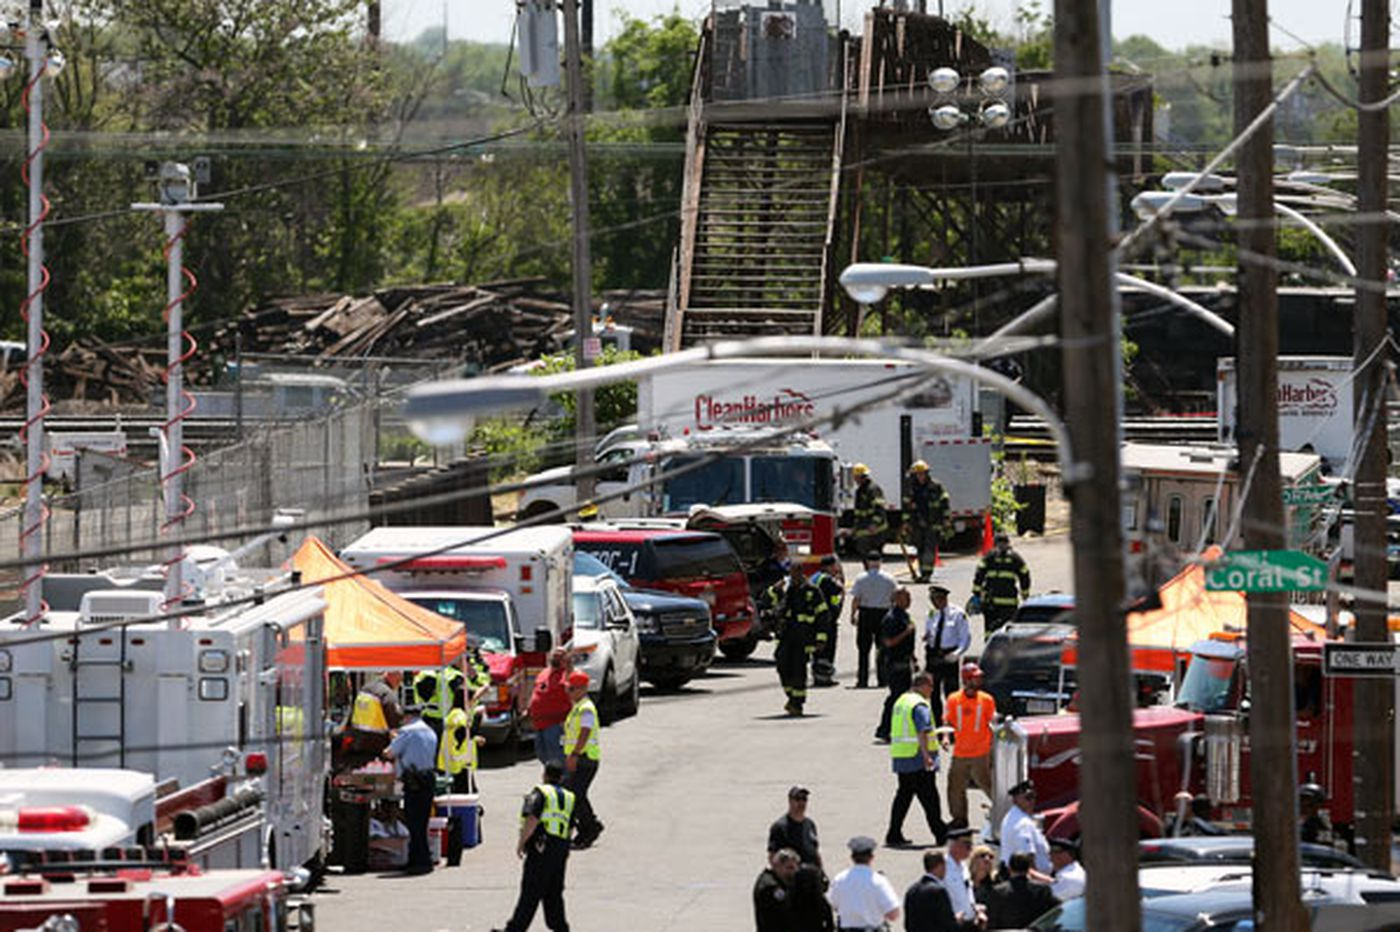 NTSB: Amtrak train sped up before crash